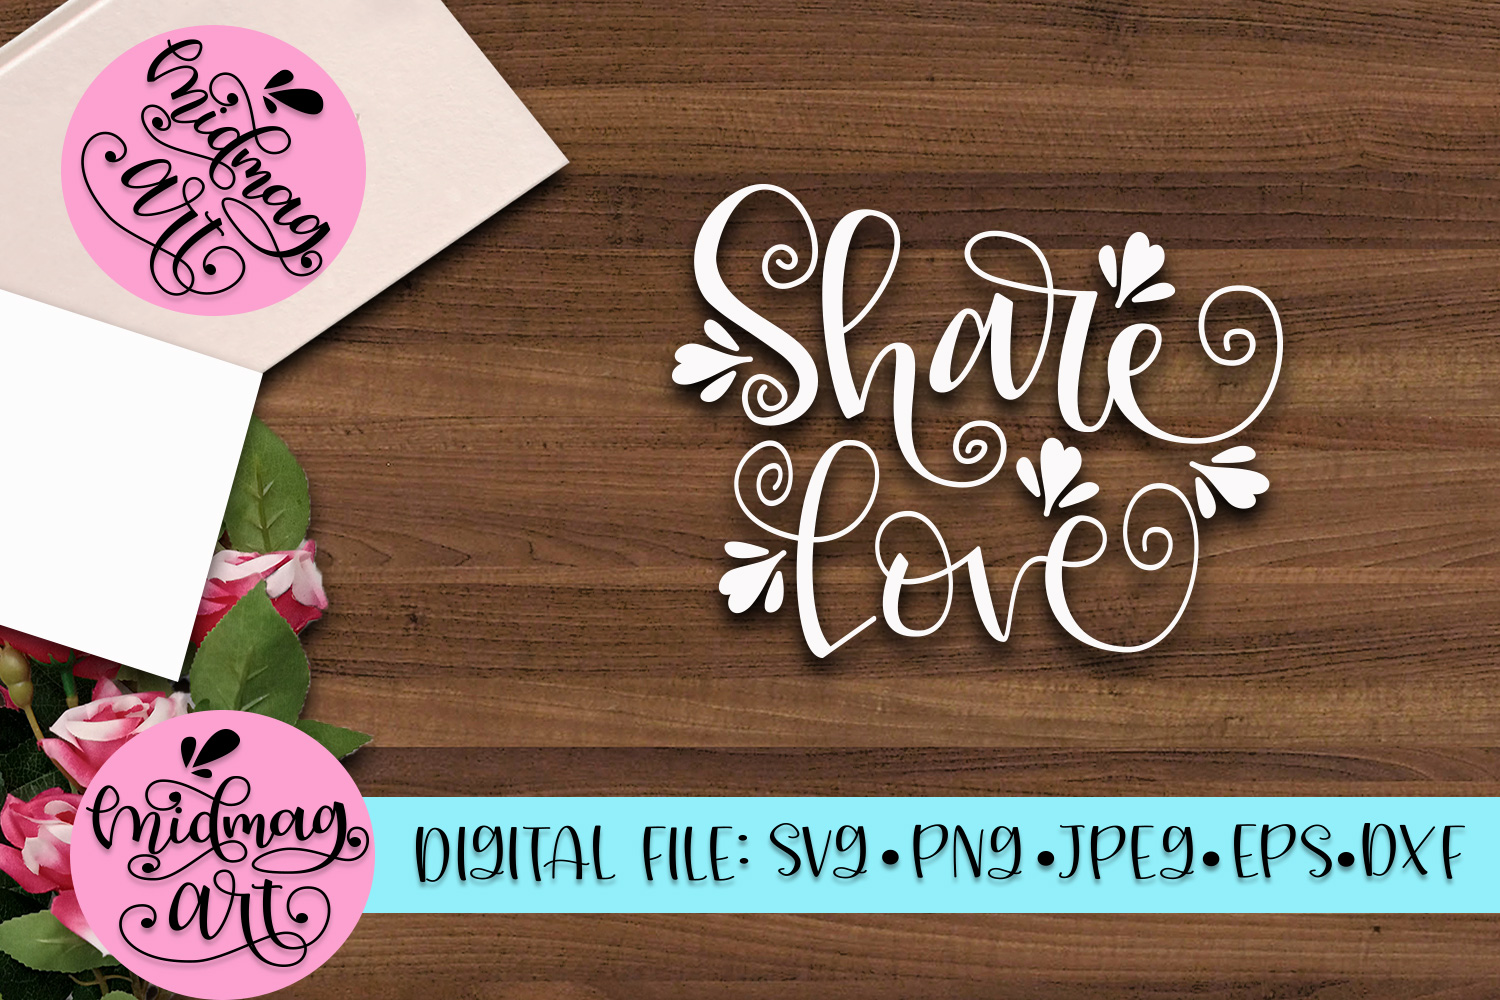 Share love svg, png, jpeg, eps and dxf example image 2